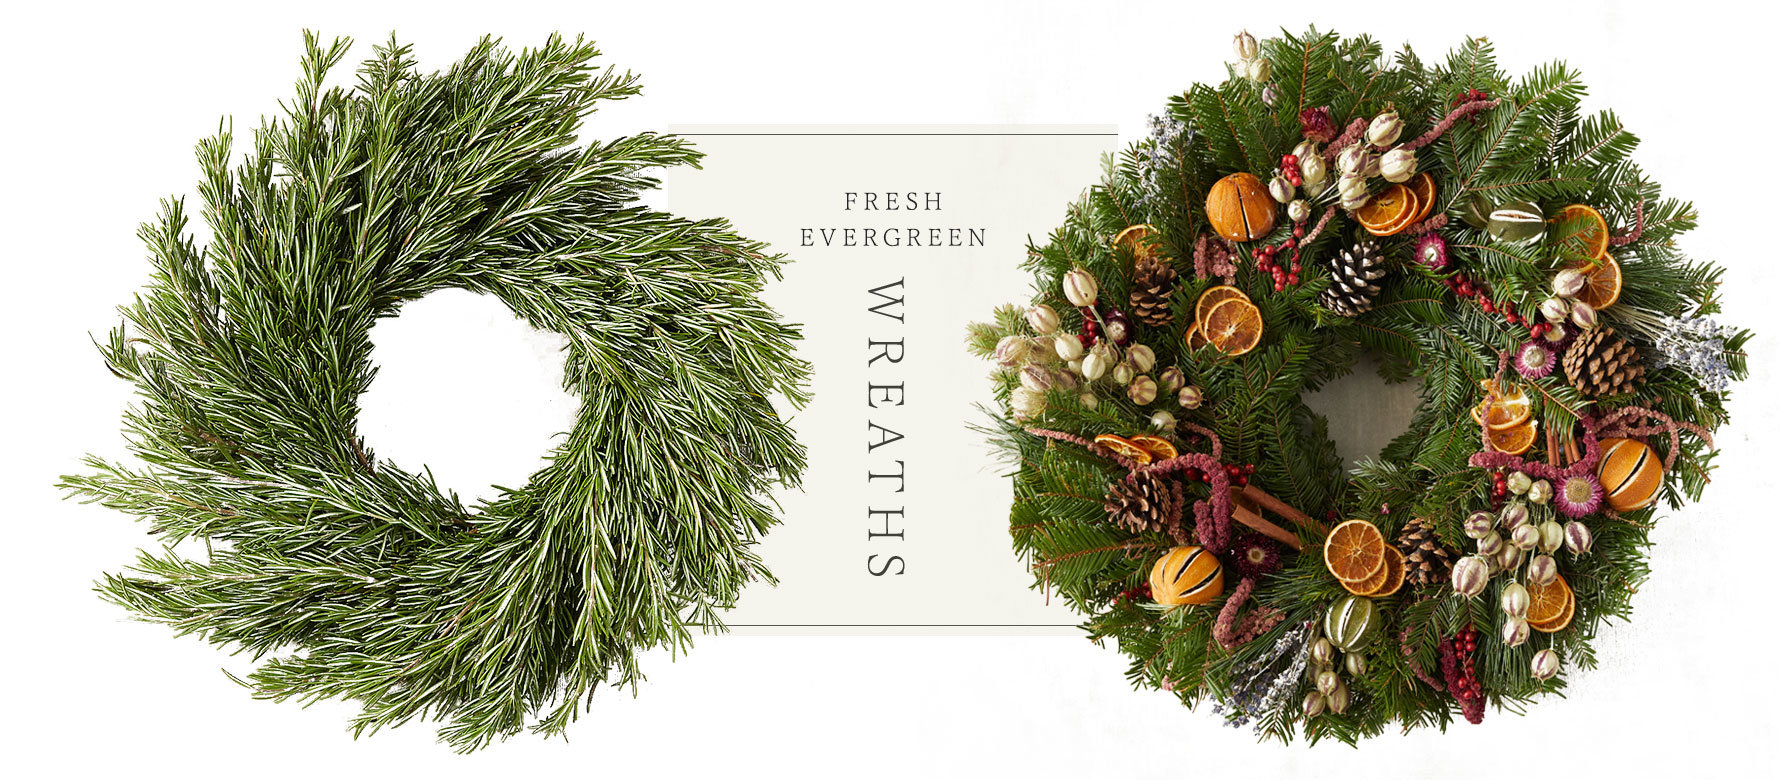 Fresh evergreen wreaths